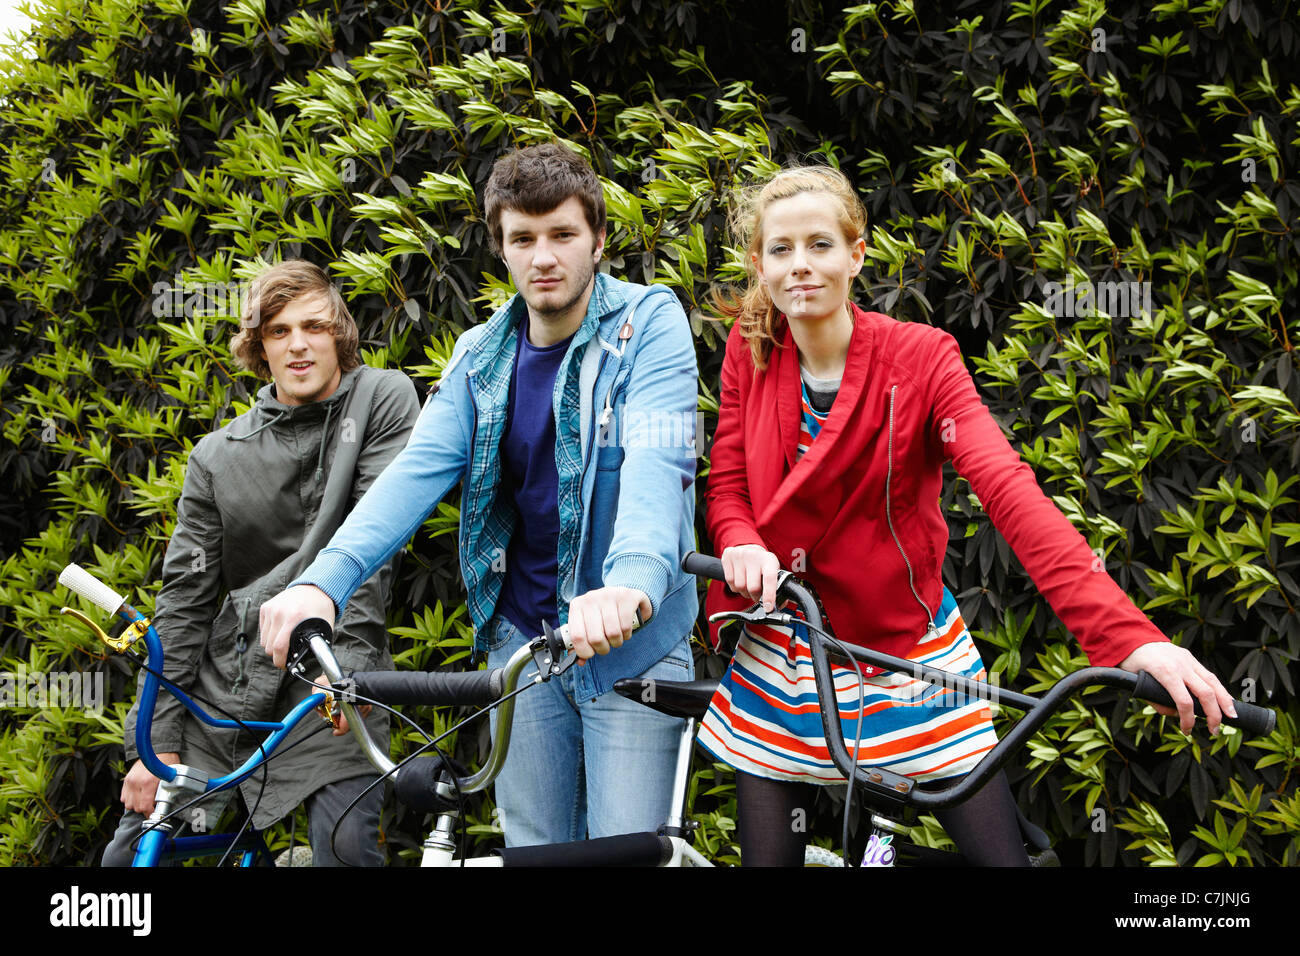 Teenagers with bicycles in park - Stock Image